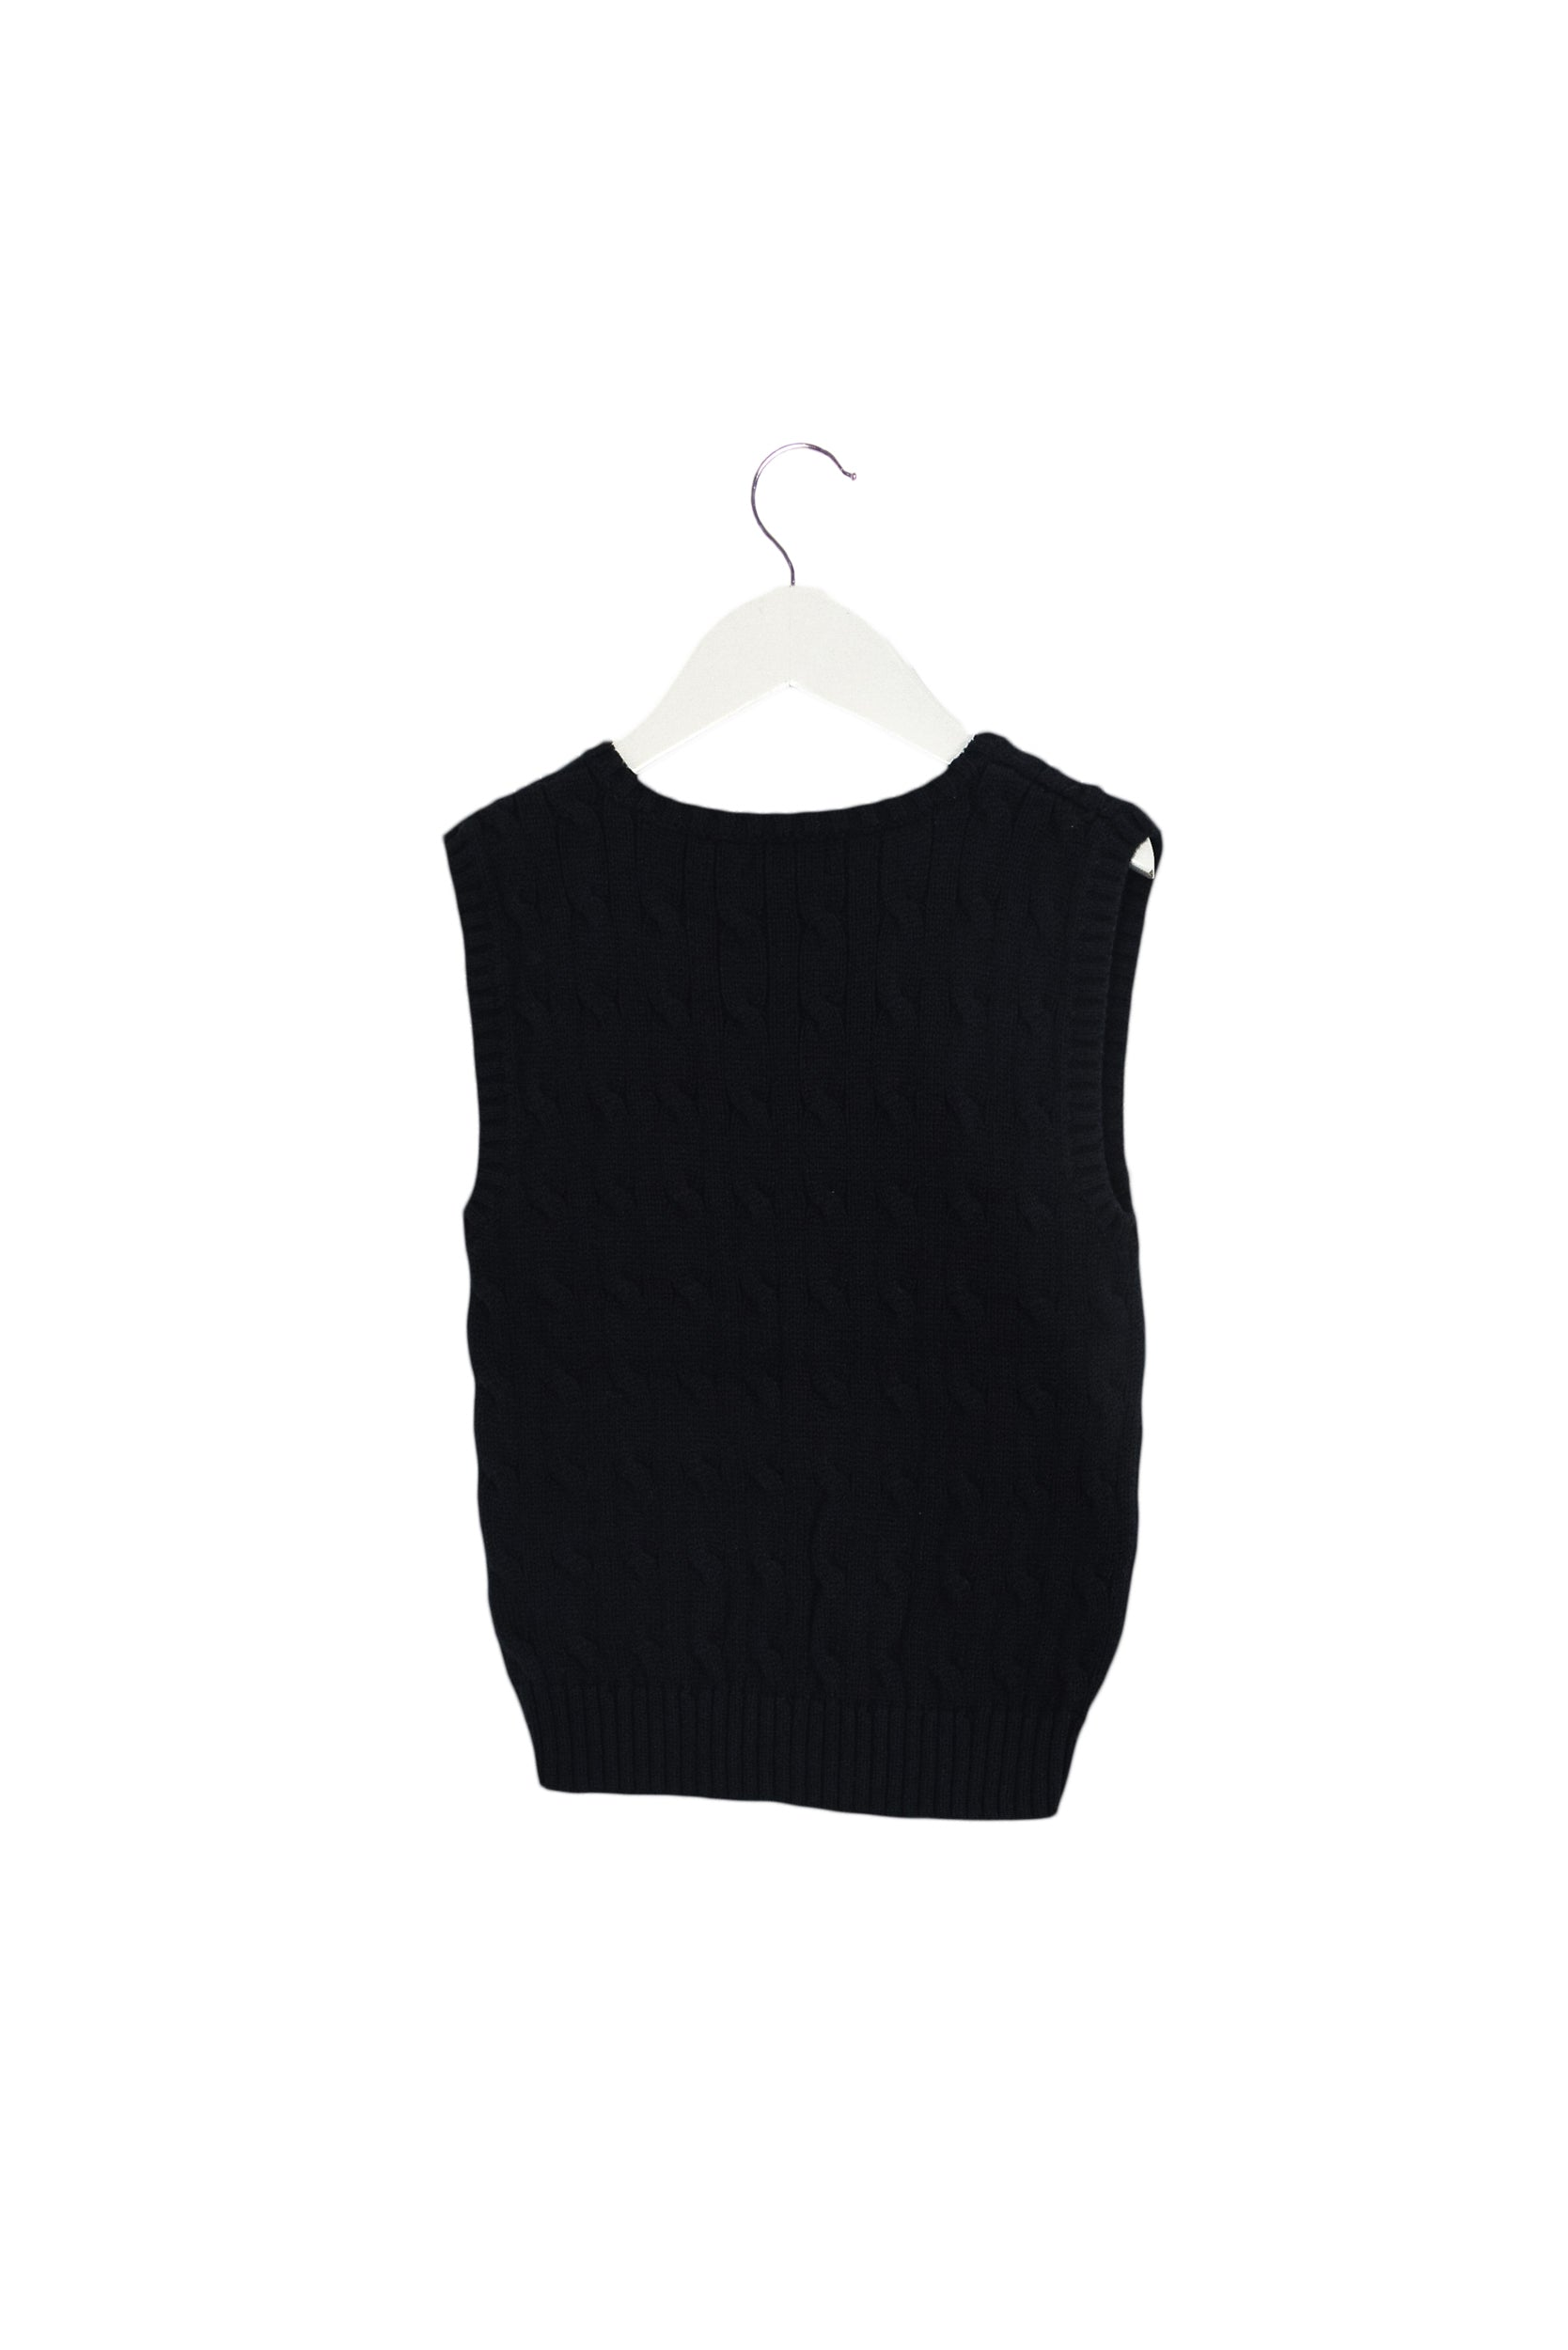 Knit Vest 4T at Retykle